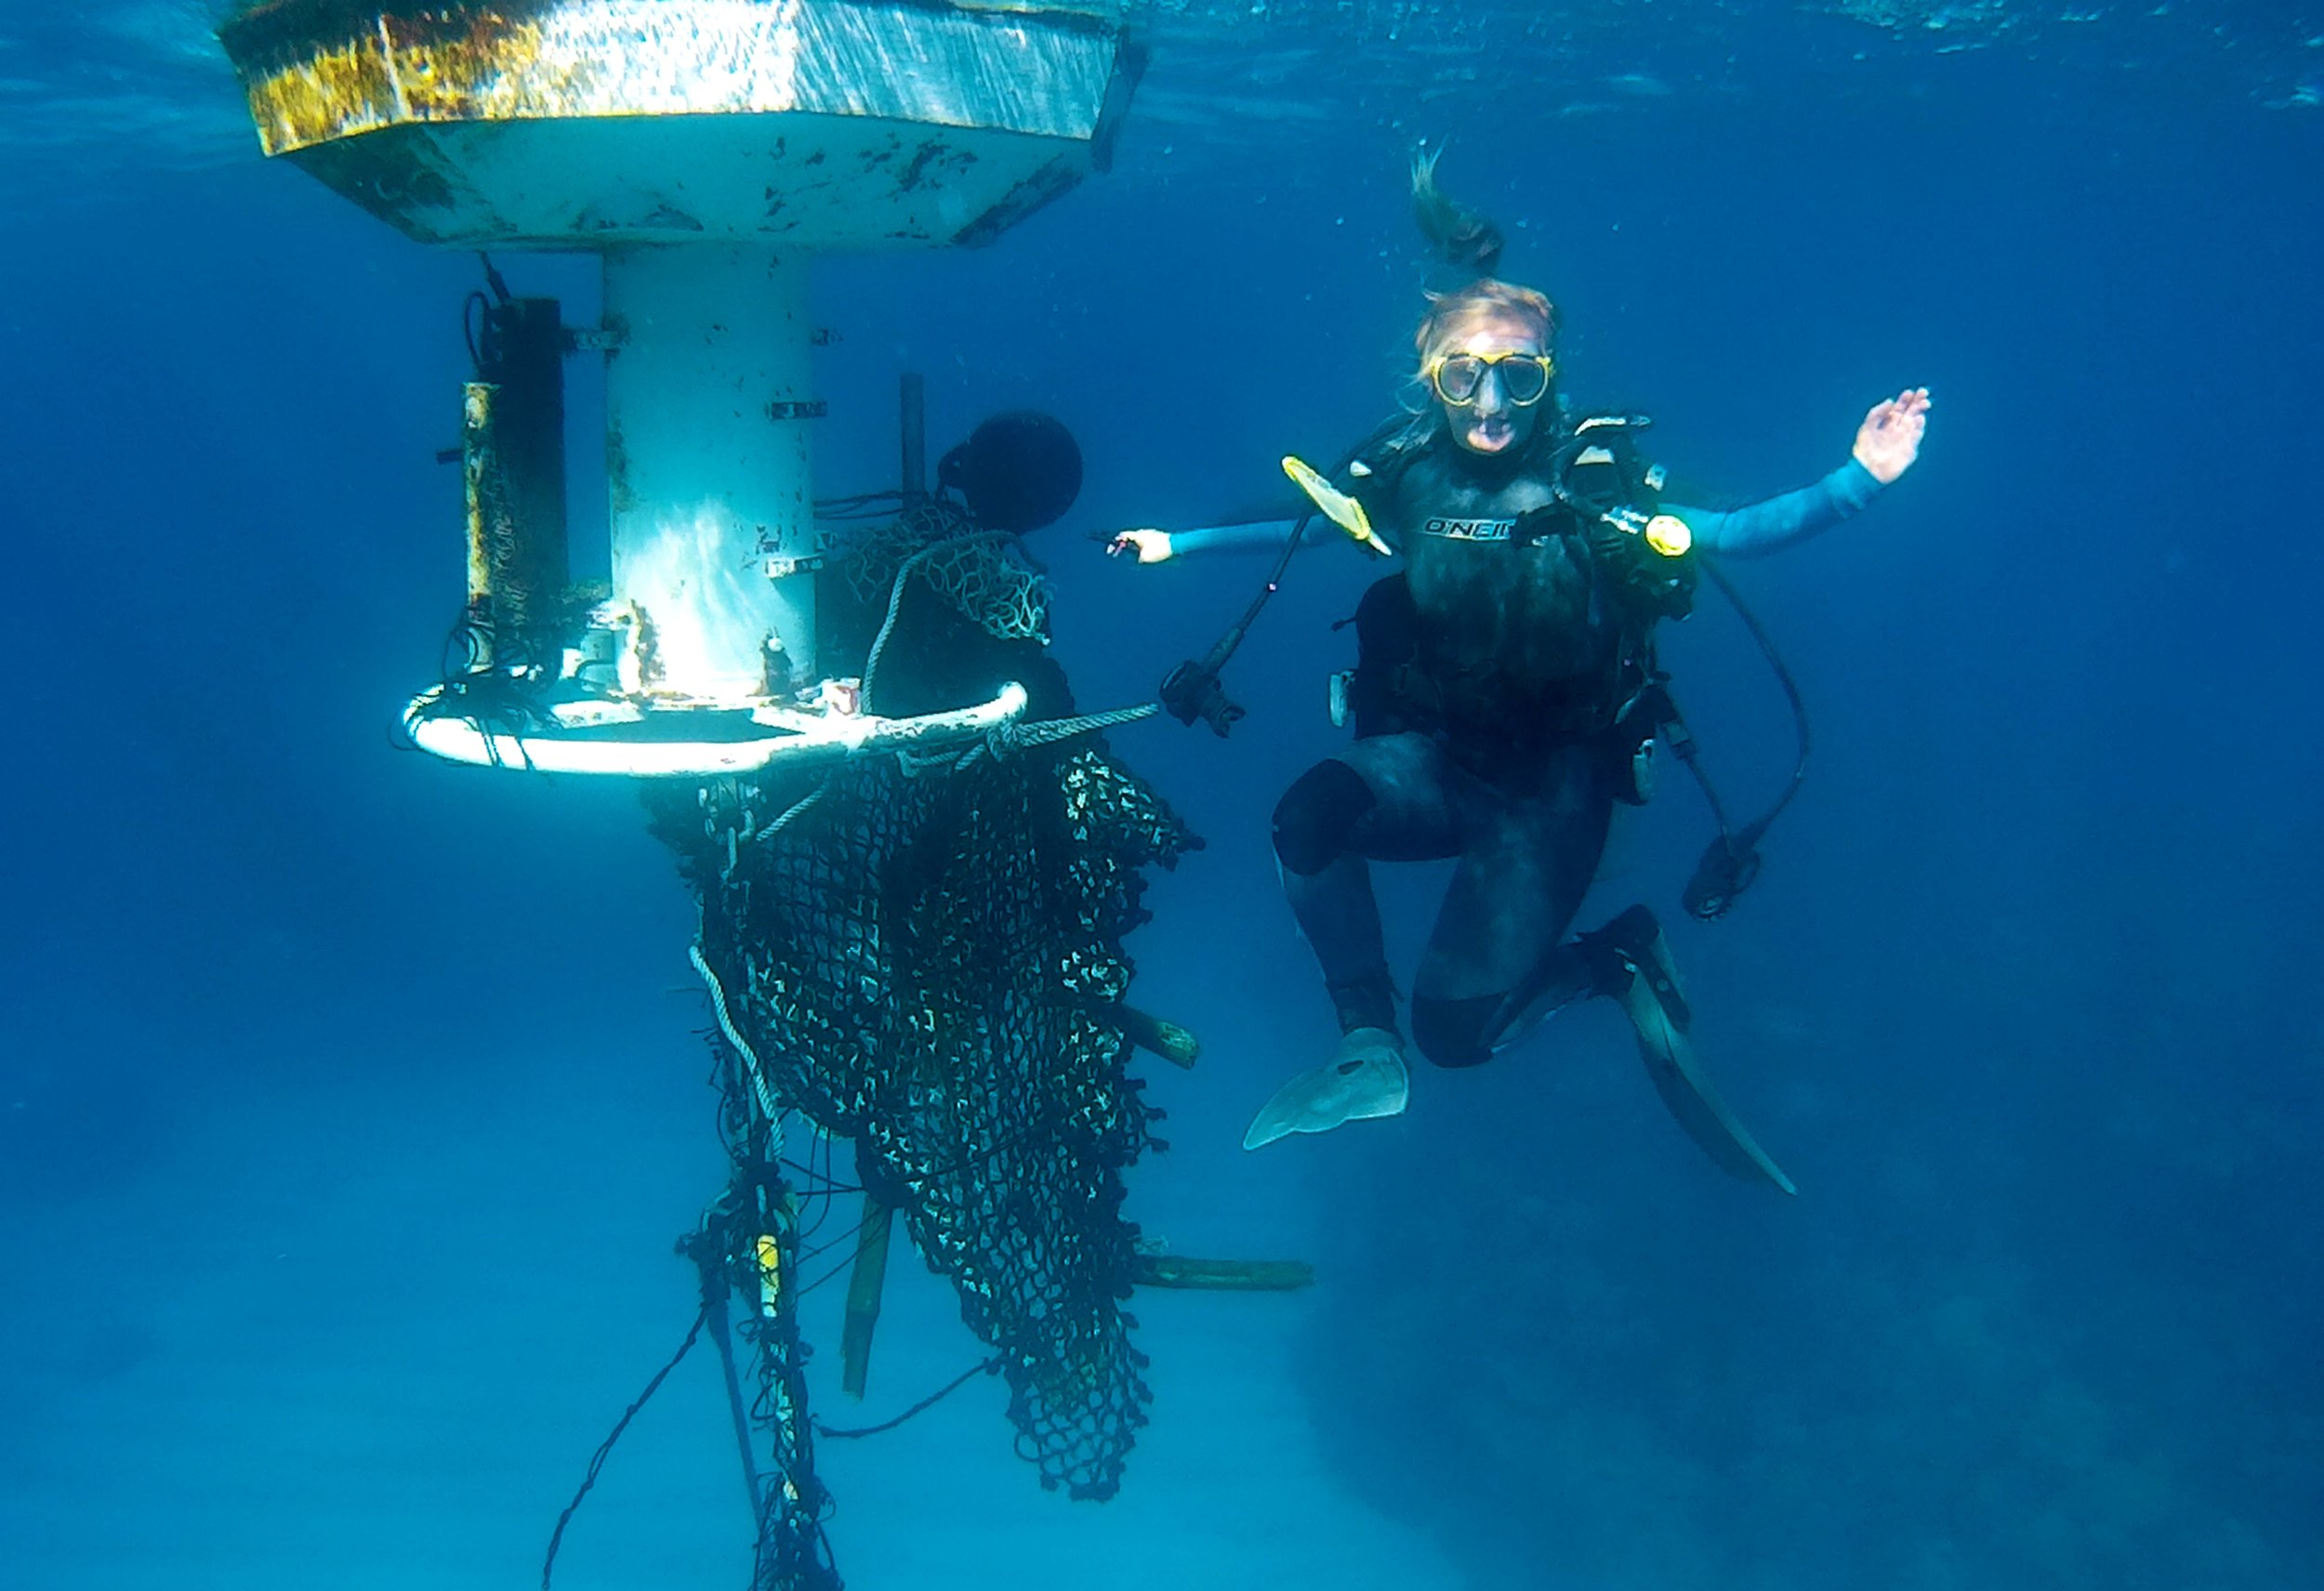 Figure 6. B-team Phd student sara Fowell cleaning off the Hog reef CO2 buoy, Bermuda